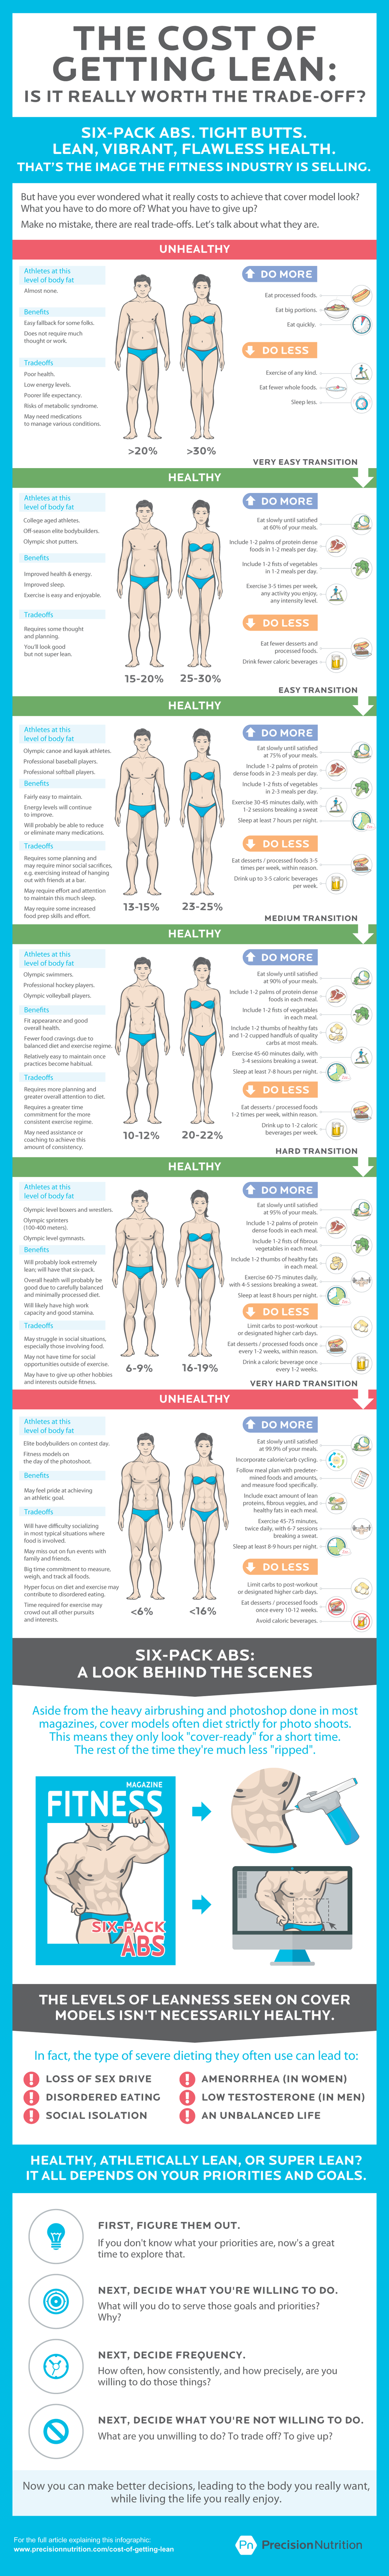 precision-nutrition-cost-of-getting-lean-infographic.png